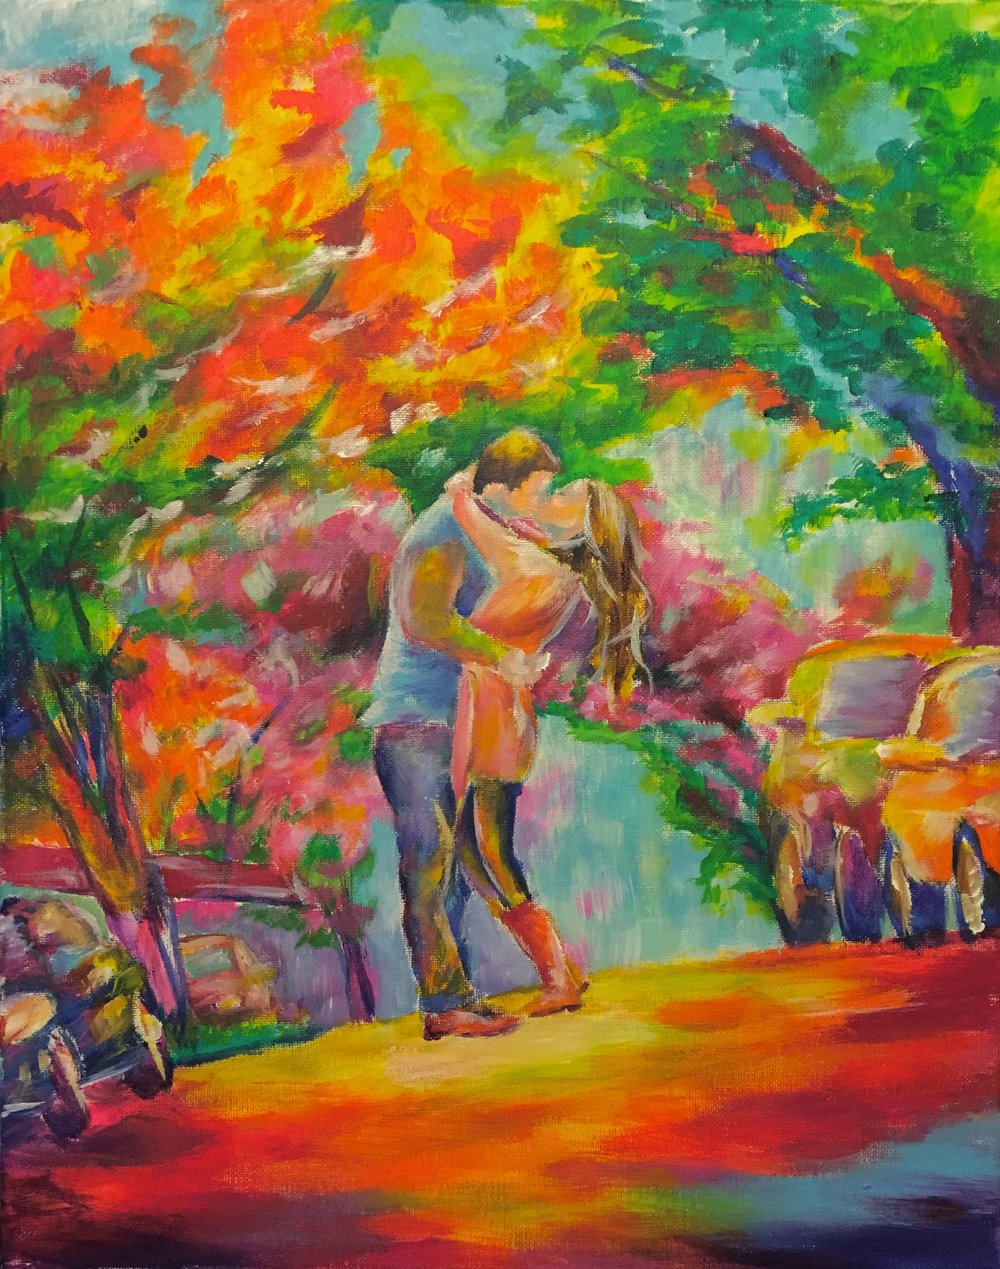 Engagement - Painting of Honeymoon before Wedding by Taylor Wise